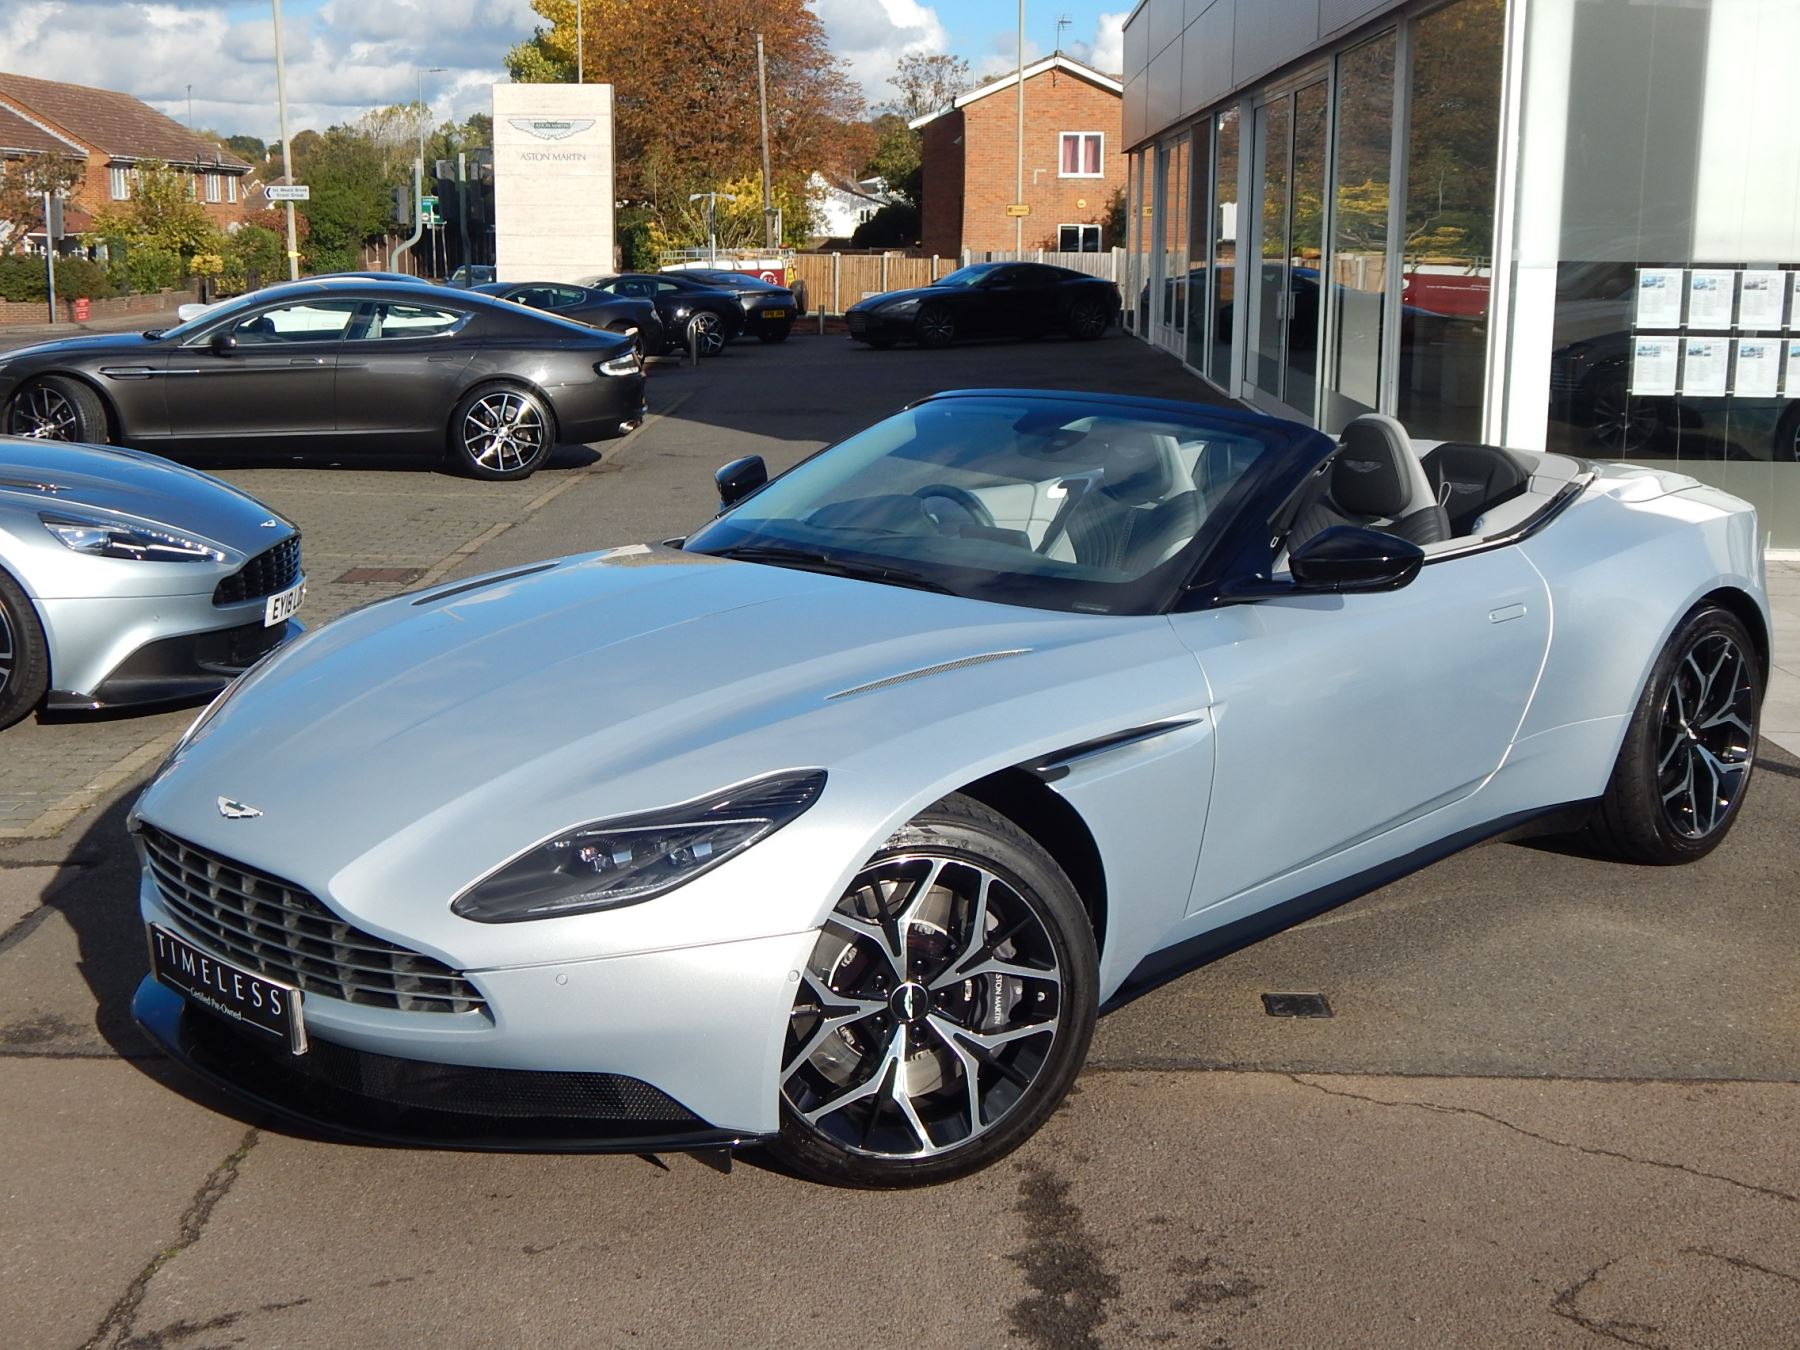 Aston Martin DB11 Volante 4.0 V8 Twin Turbo image 2